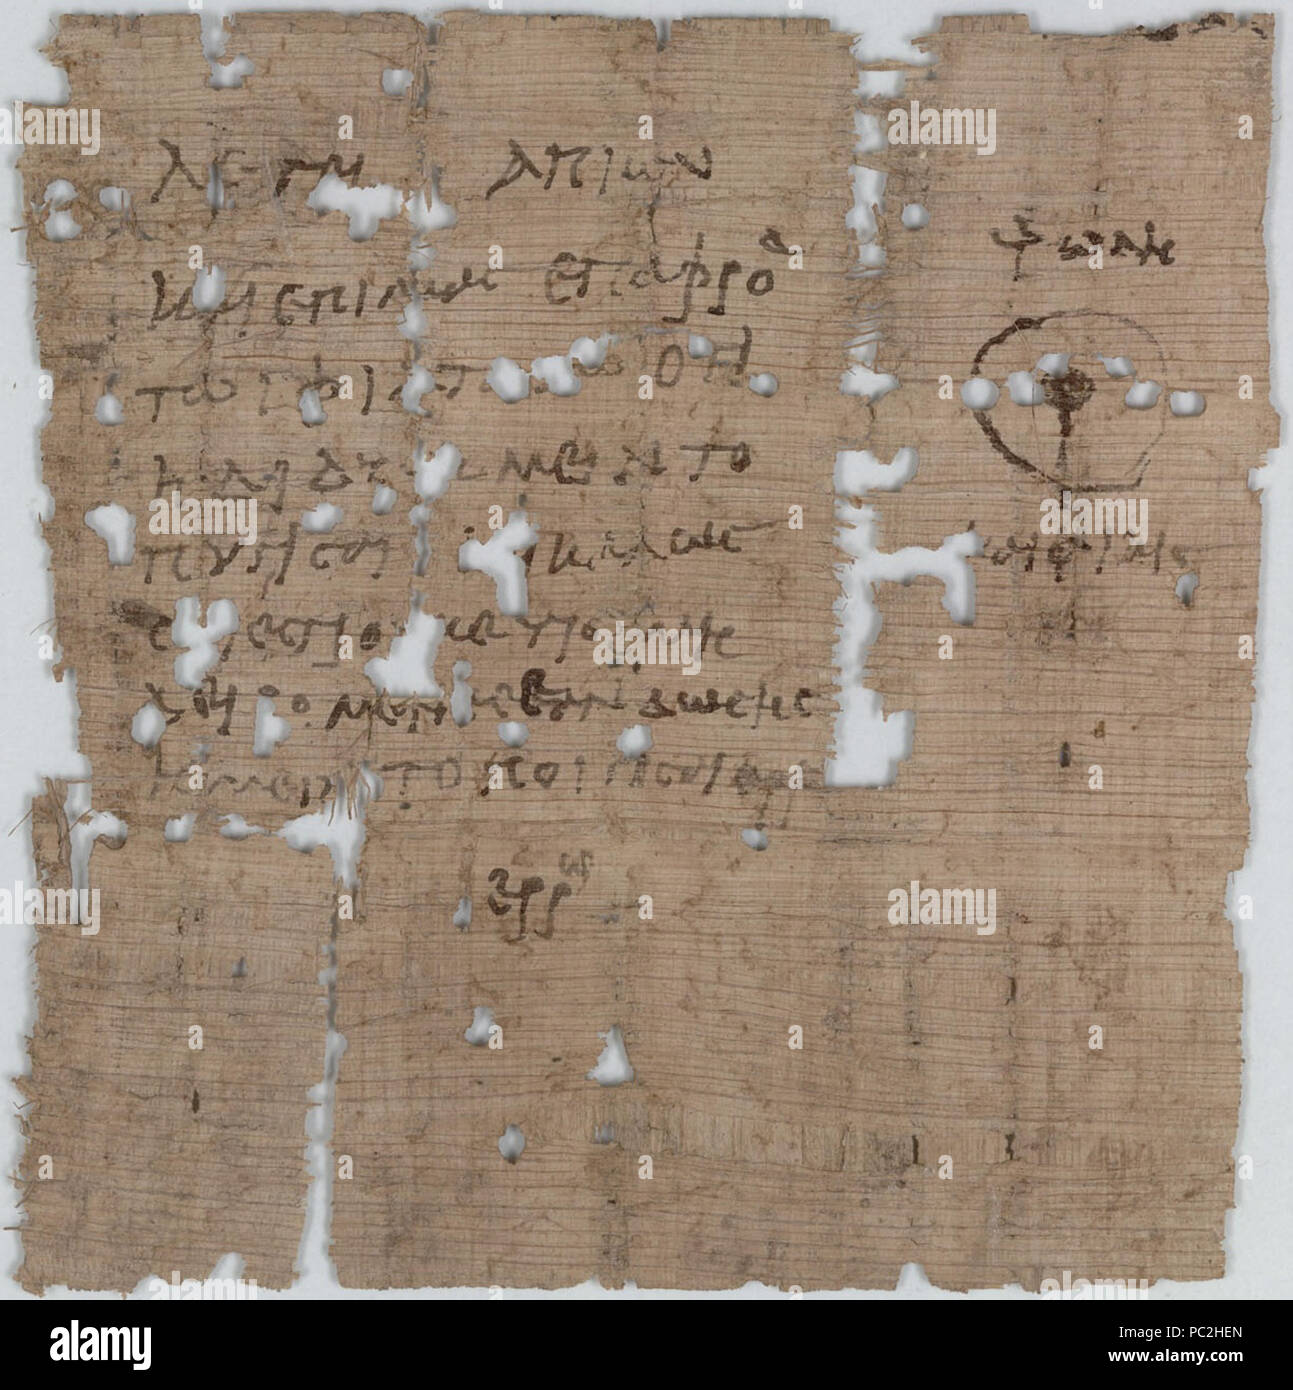 467 Papyrus Oxyrhychus 3070 - Indecent Proposal - Stock Image